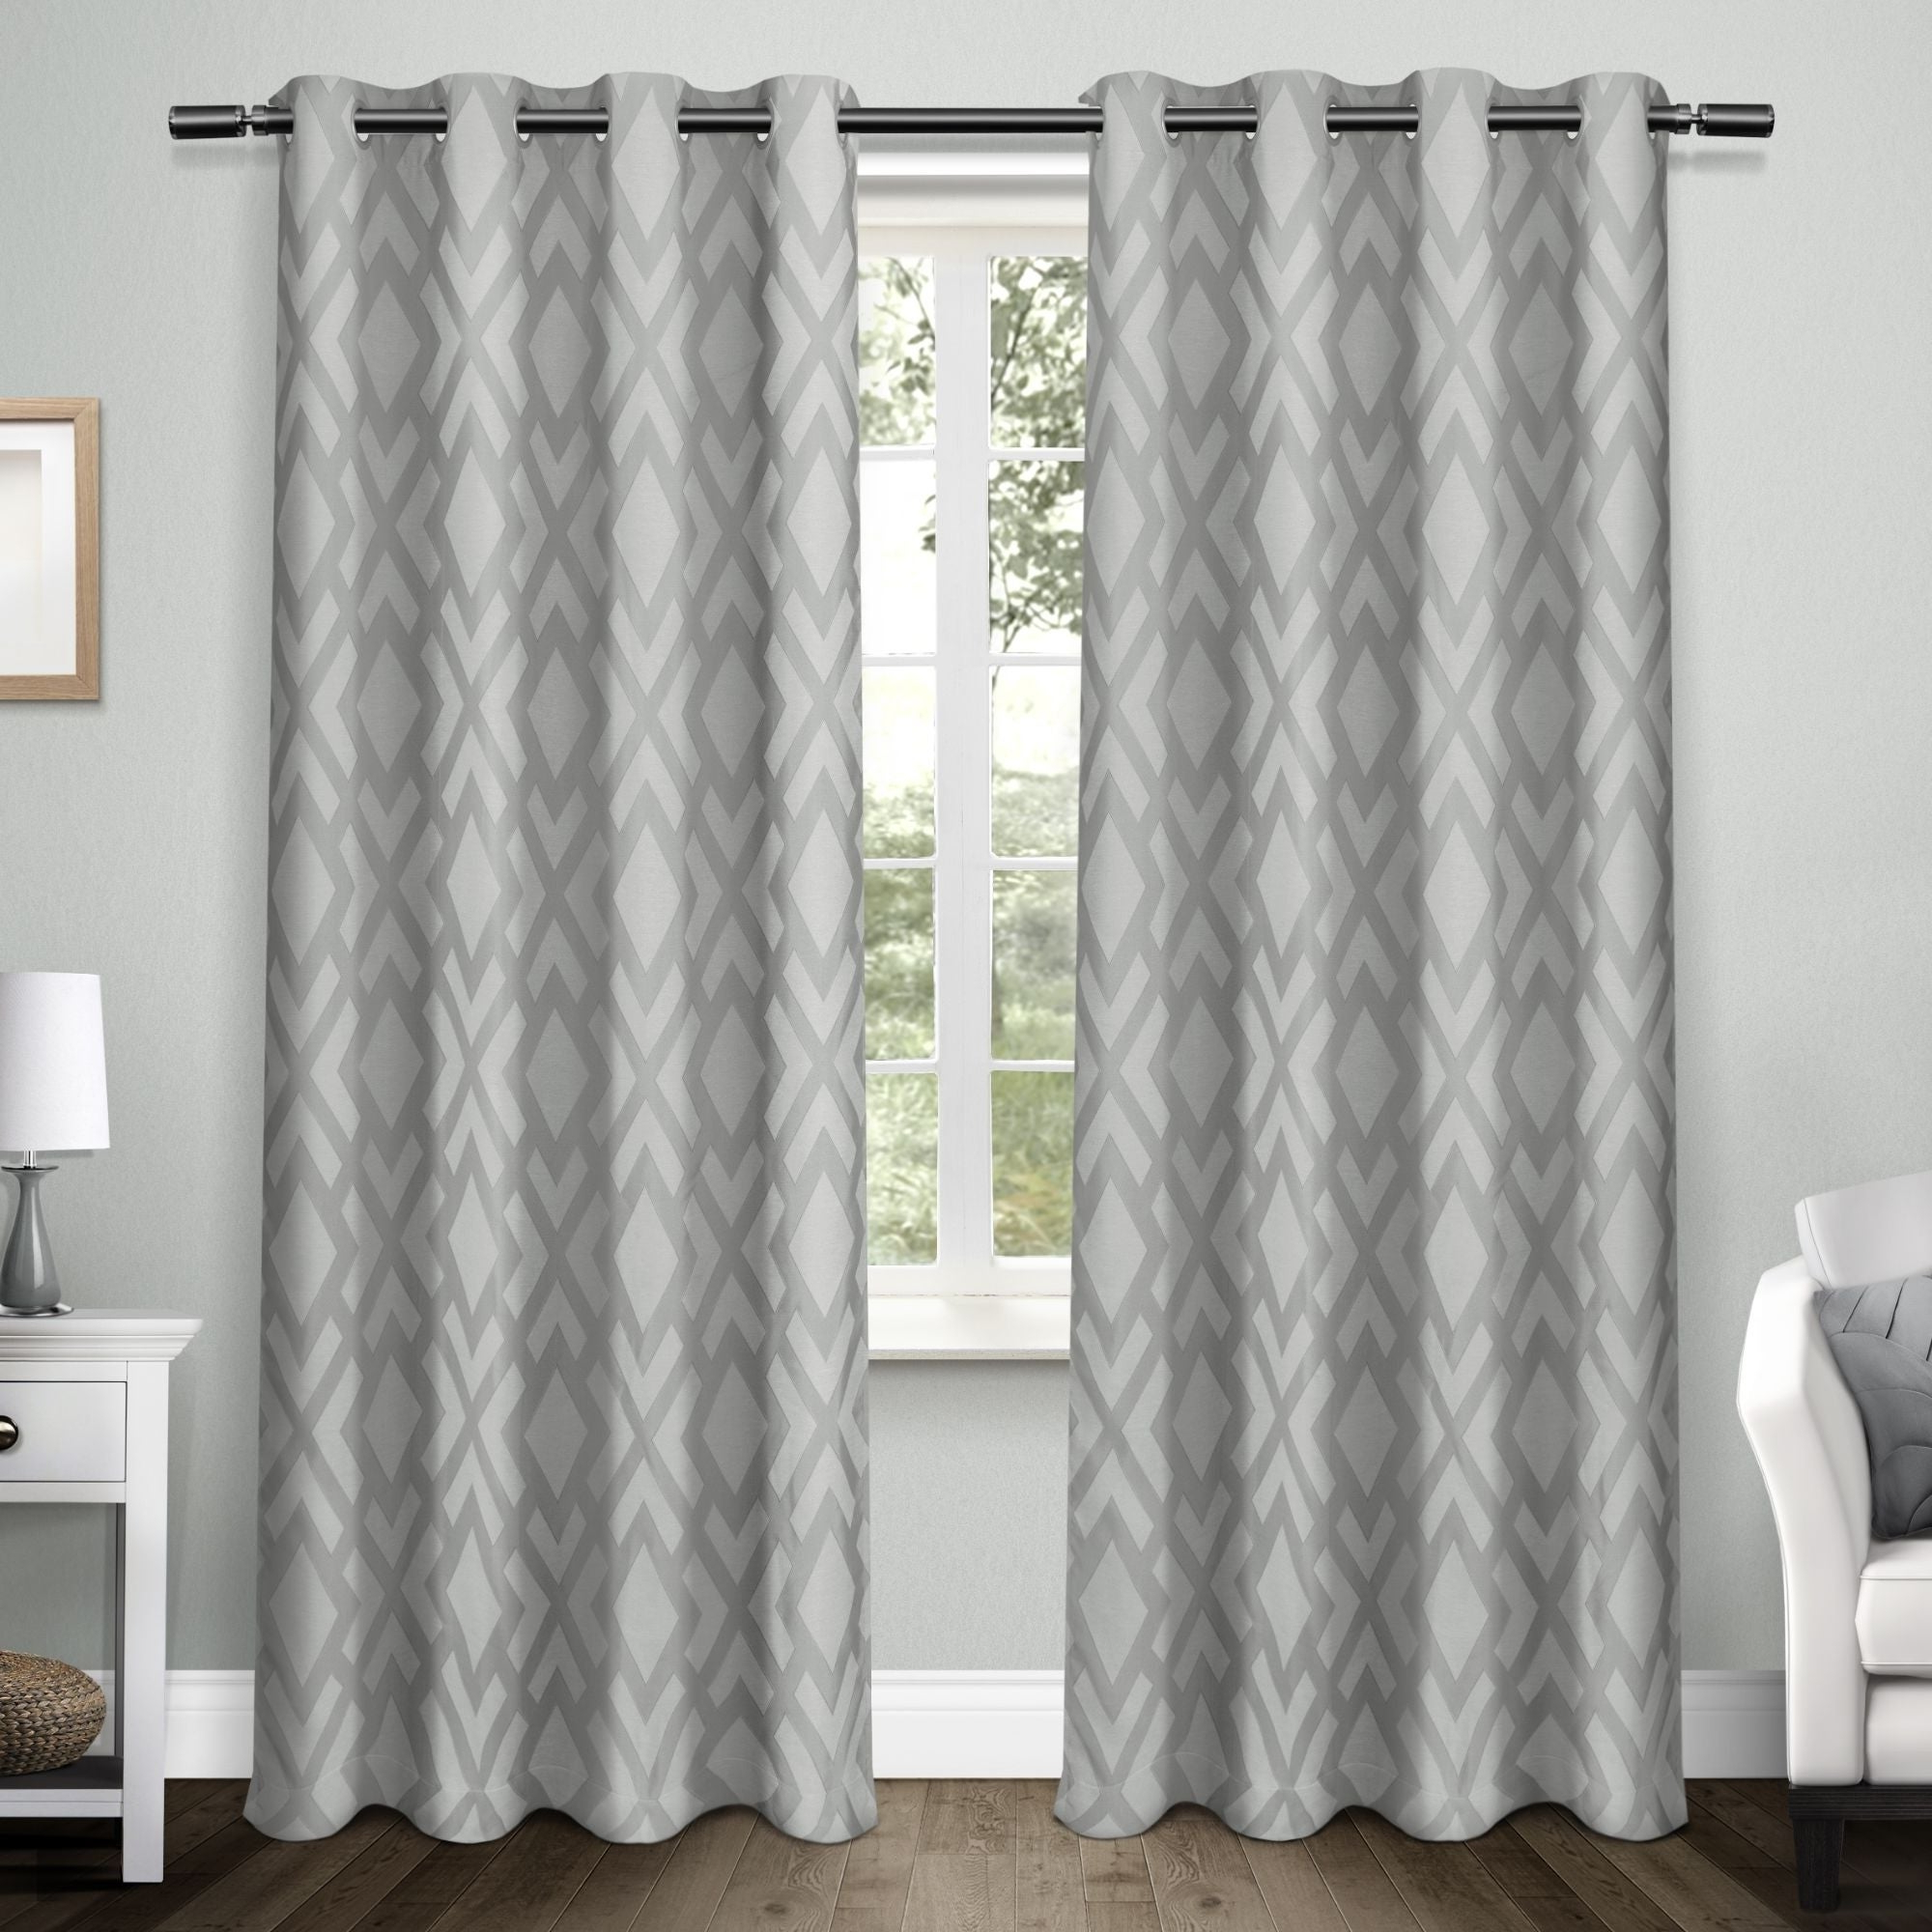 Trendy Thermal Woven Blackout Grommet Top Curtain Panel Pairs Intended For Ati Home Easton Thermal Woven Blackout Grommet Top Curtain Panel Pair (View 2 of 20)